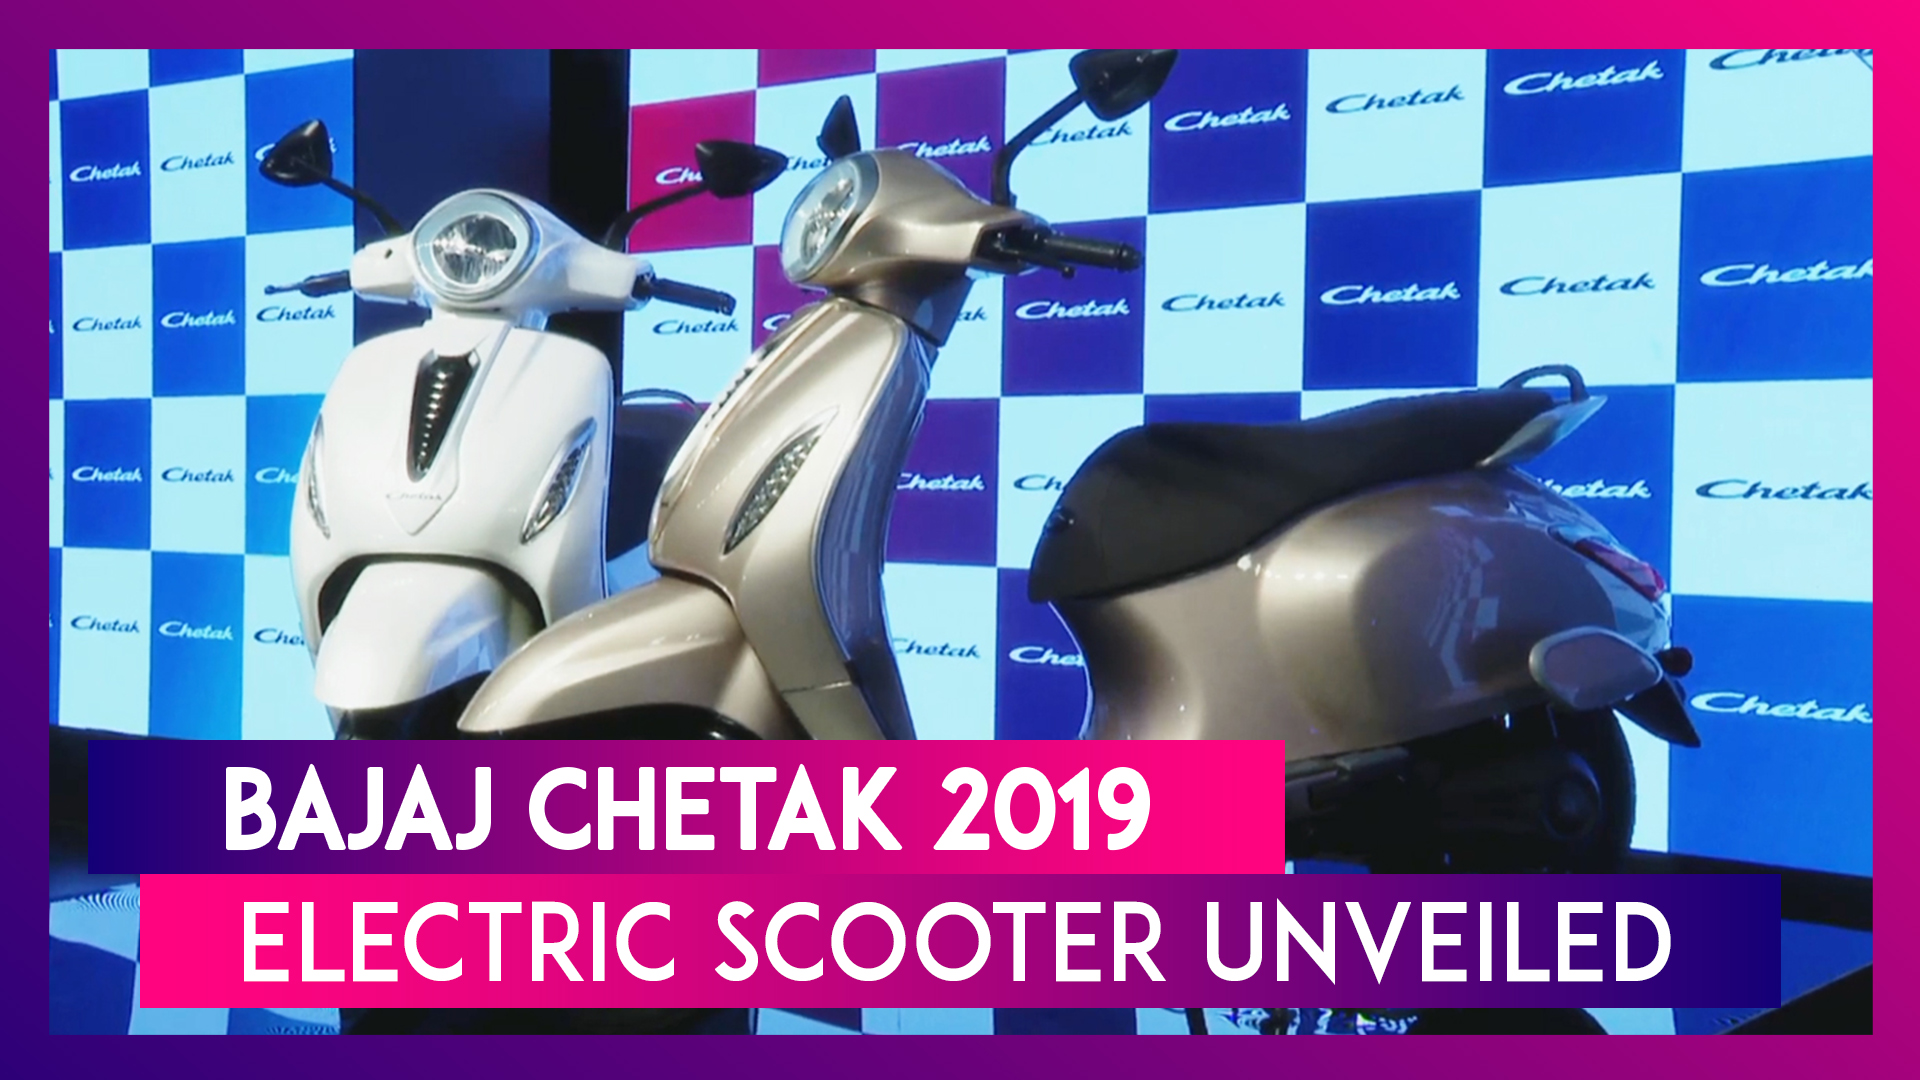 Bajaj Chetak Electric Scooter Launched India; Check Features & Specifications of Bajaj's New EV